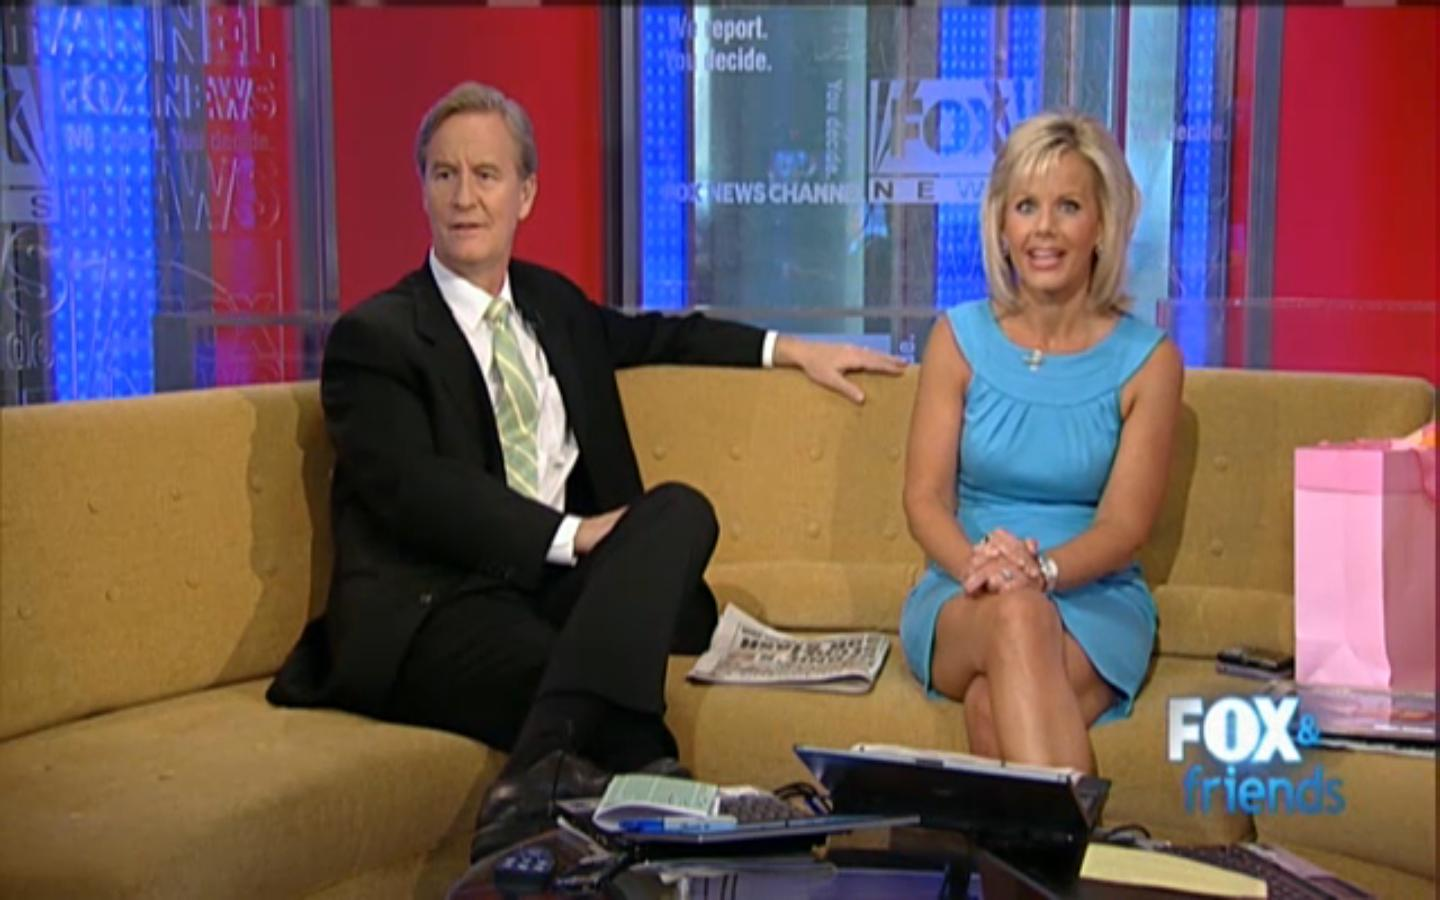 Fox and Friends After the Show Show 06/21/2010.